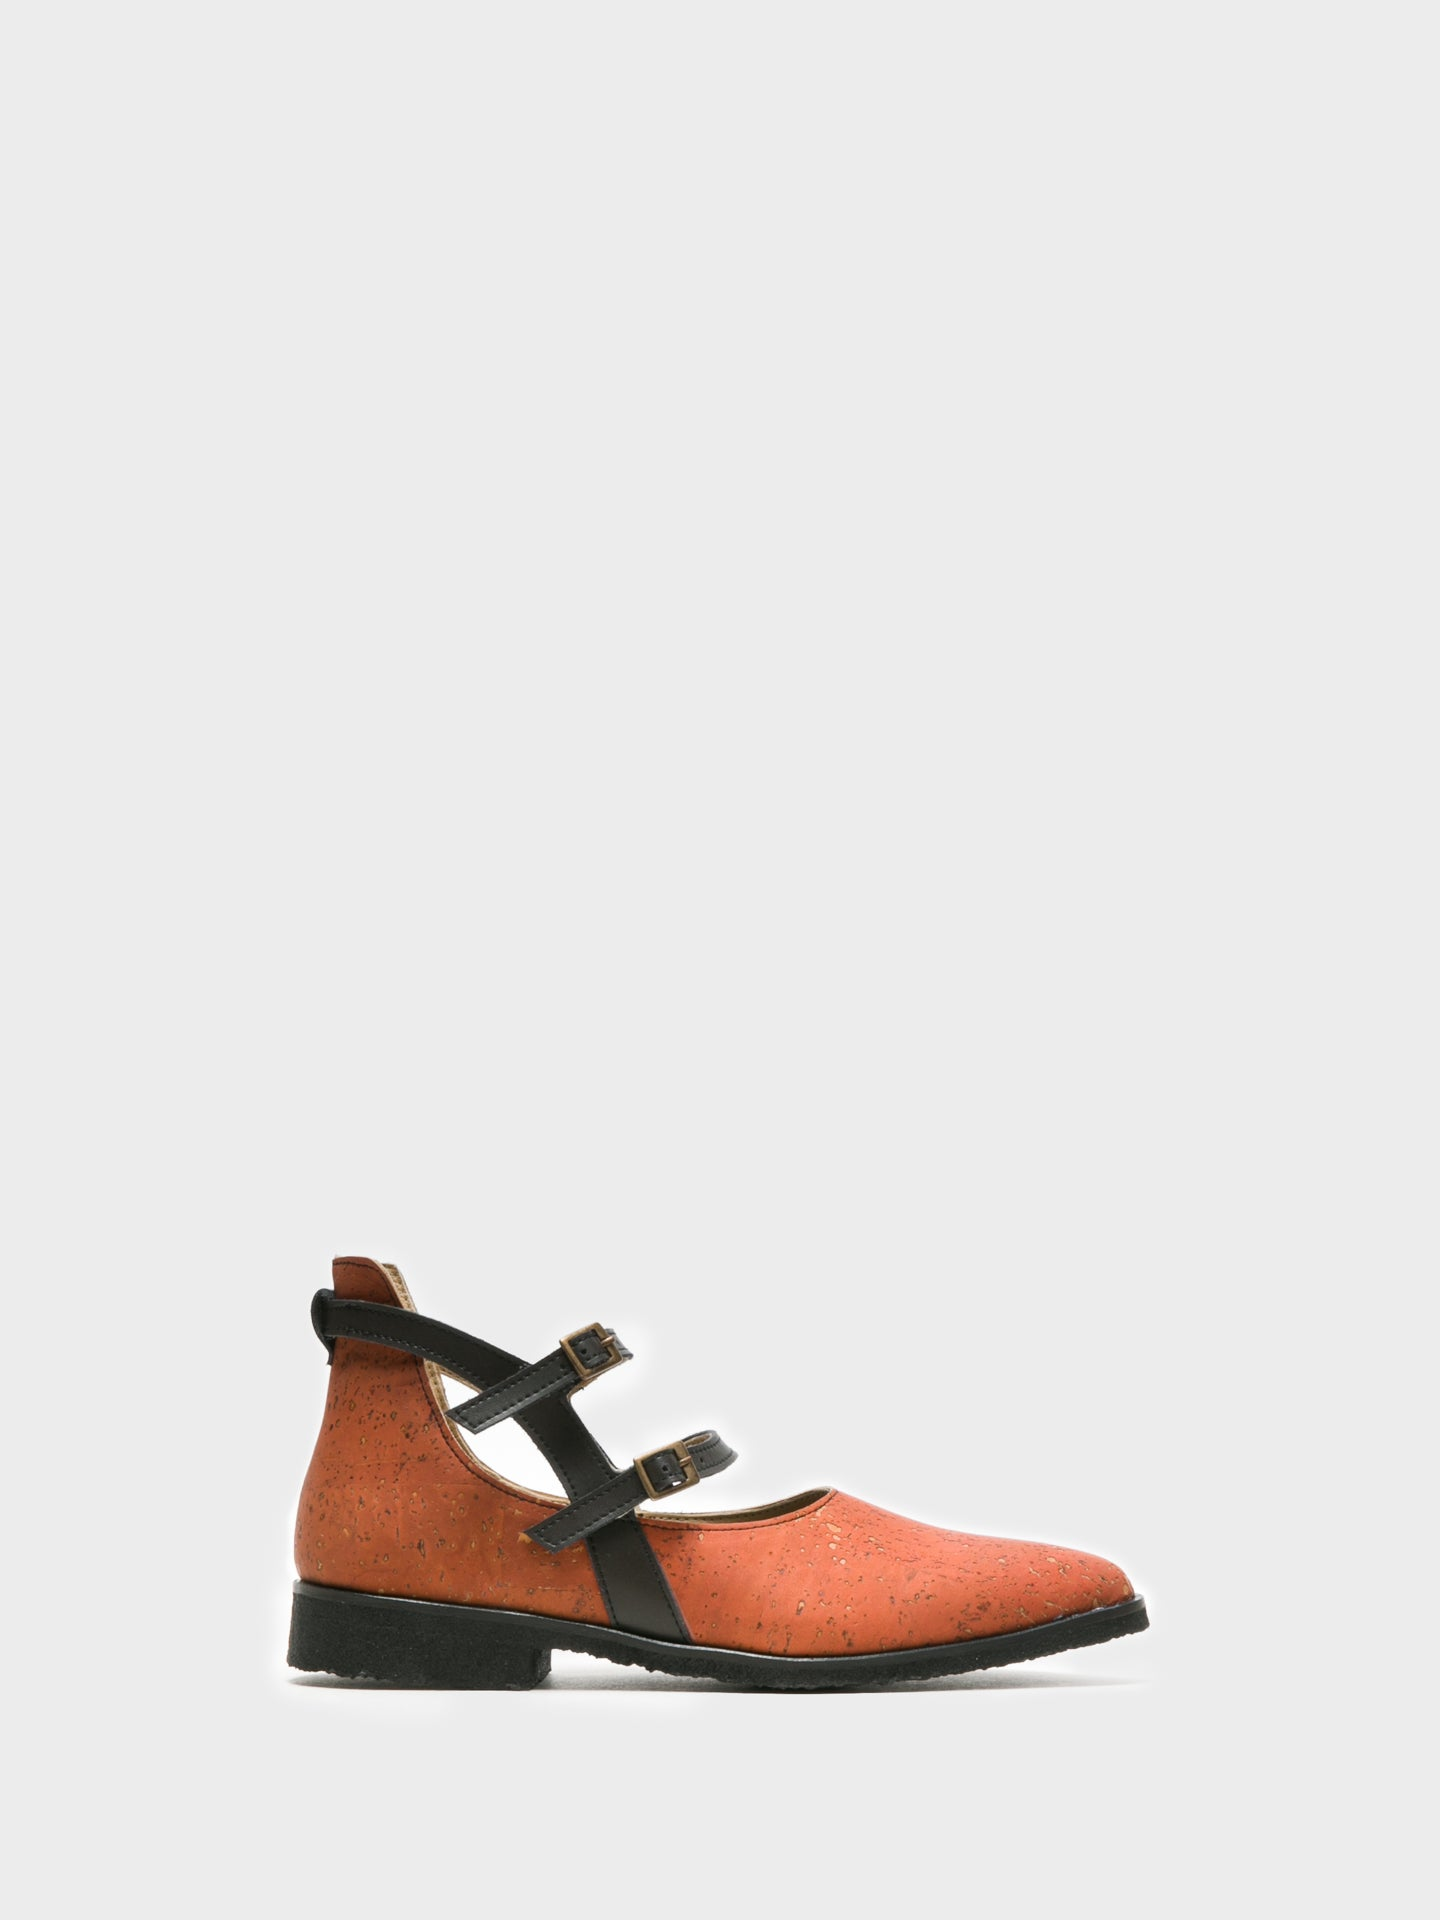 Marita Moreno Orange Buckle Shoes